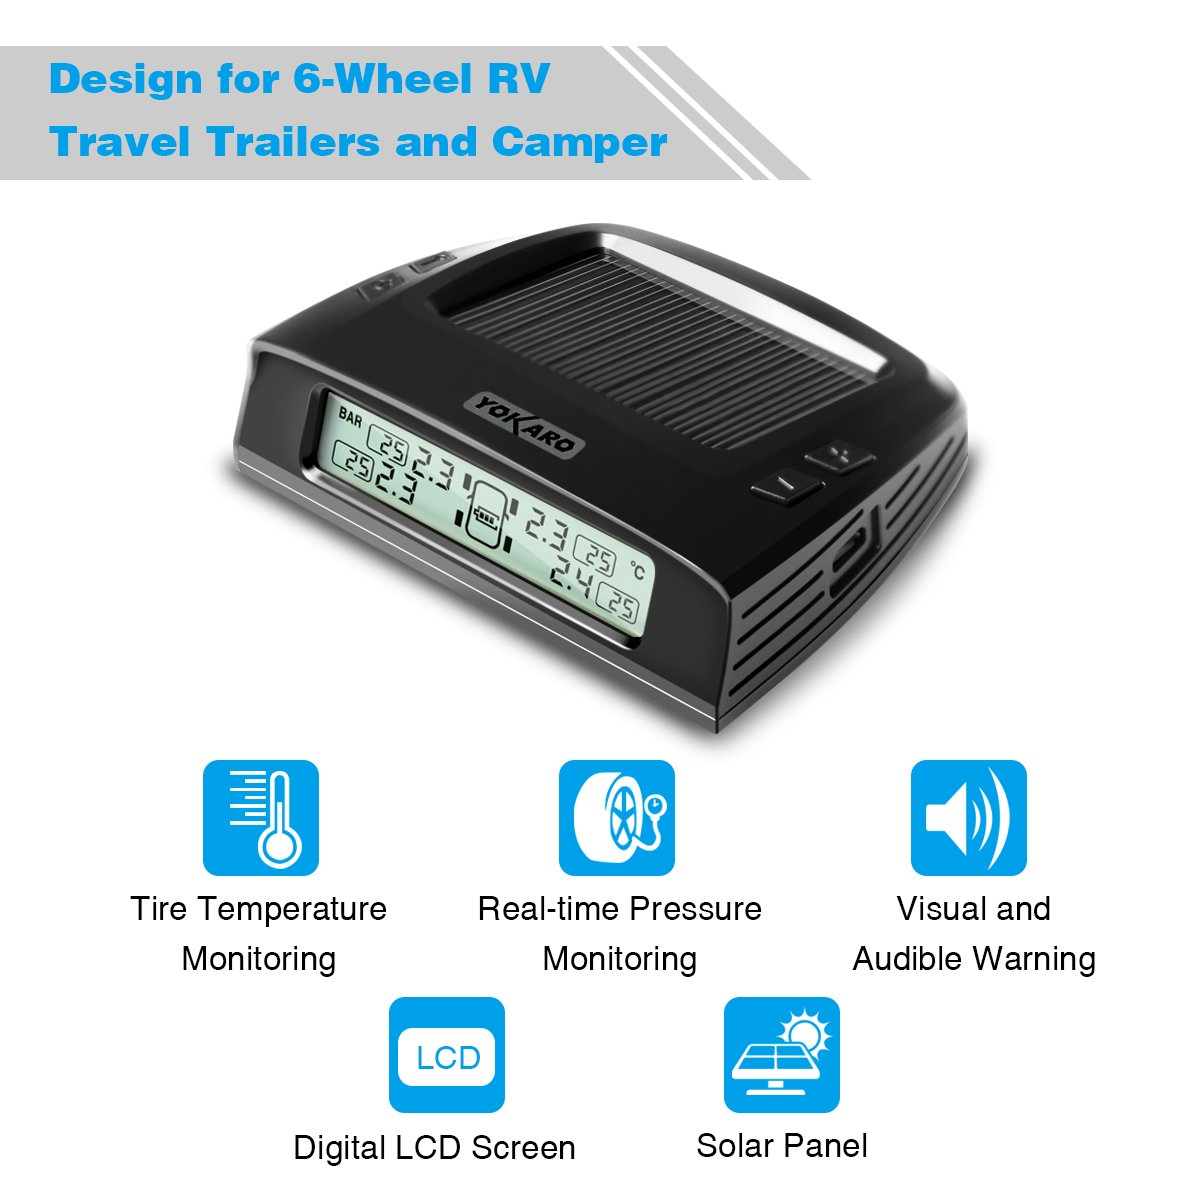 5th Wheel and Camper YOKARO RVs TPMS Solar Powered Tire Pressure Monitoring System with 6 External Sensor for RVs Travel Trailer